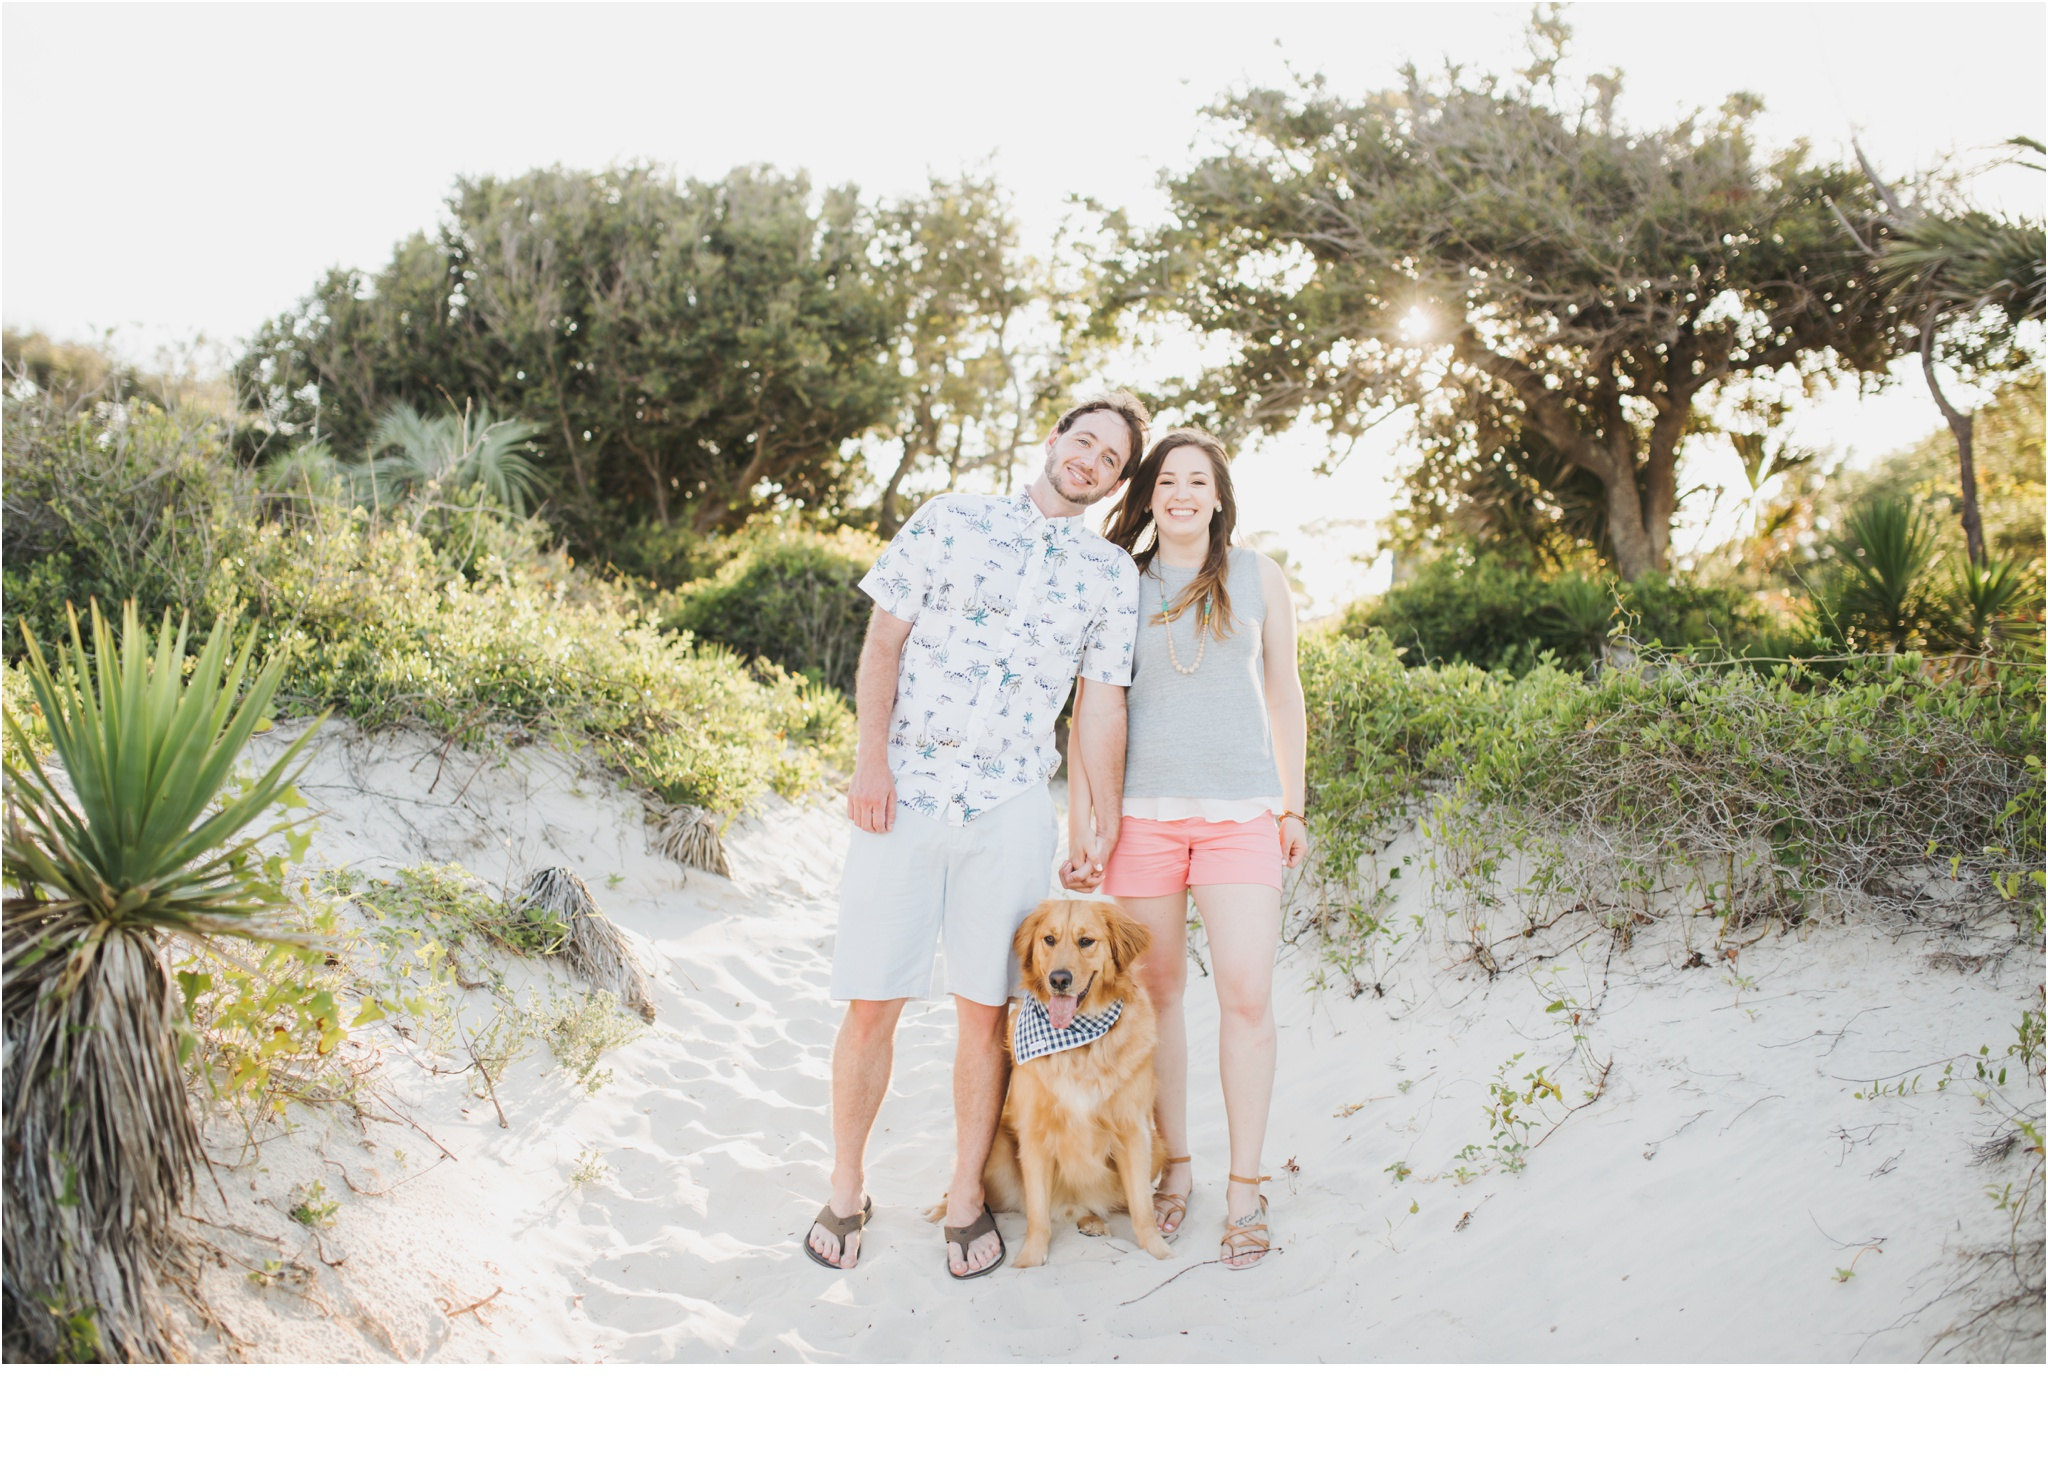 Rainey_Gregg_Photography_St._Simons_Island_Georgia_California_Wedding_Portrait_Photography_1431.jpg